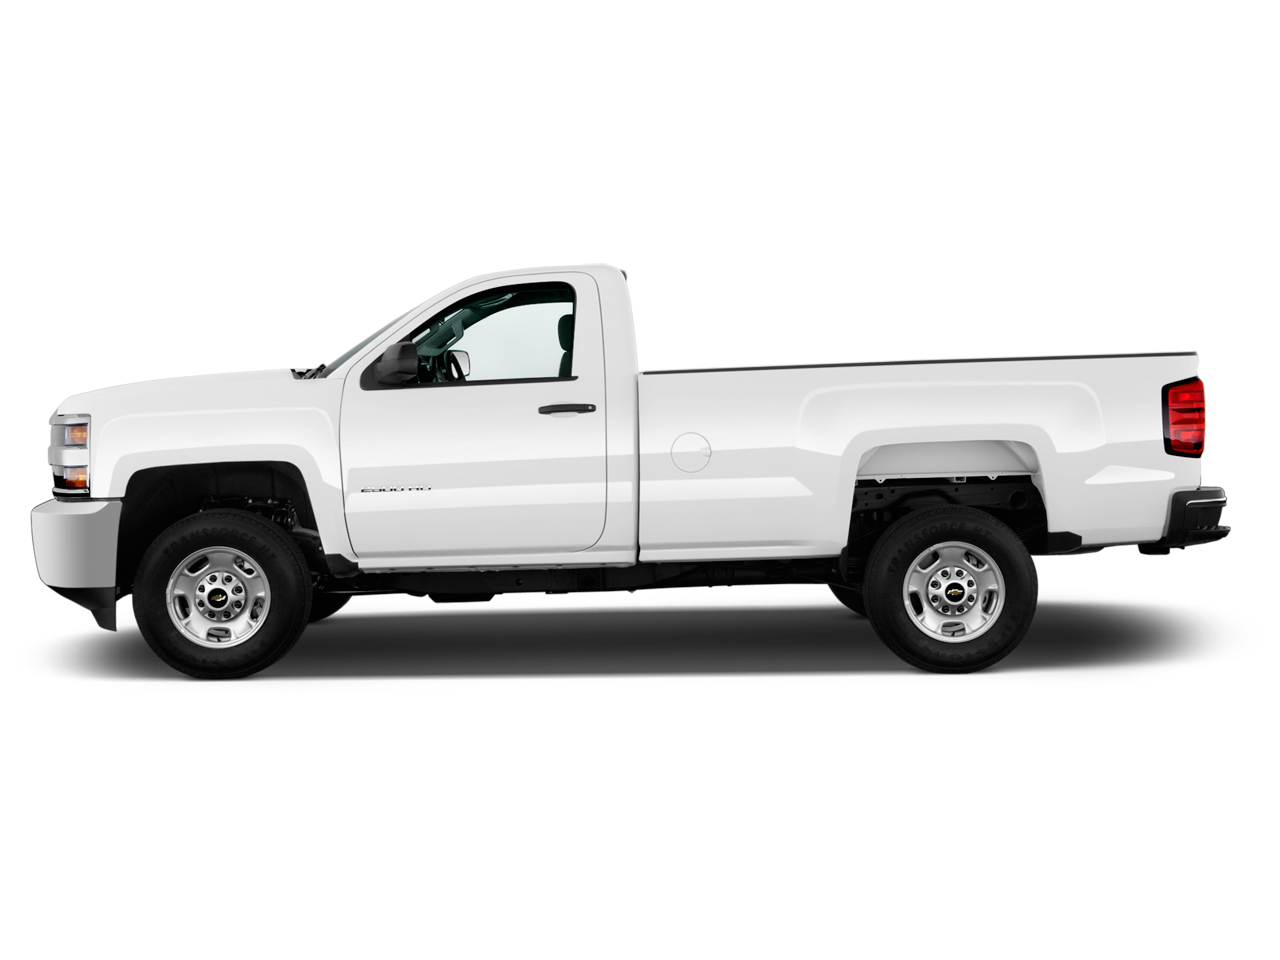 Truck chevy 2500hd trucks : New 2018 Chevrolet Silverado 2500HD Work Truck - Jasper IN ...